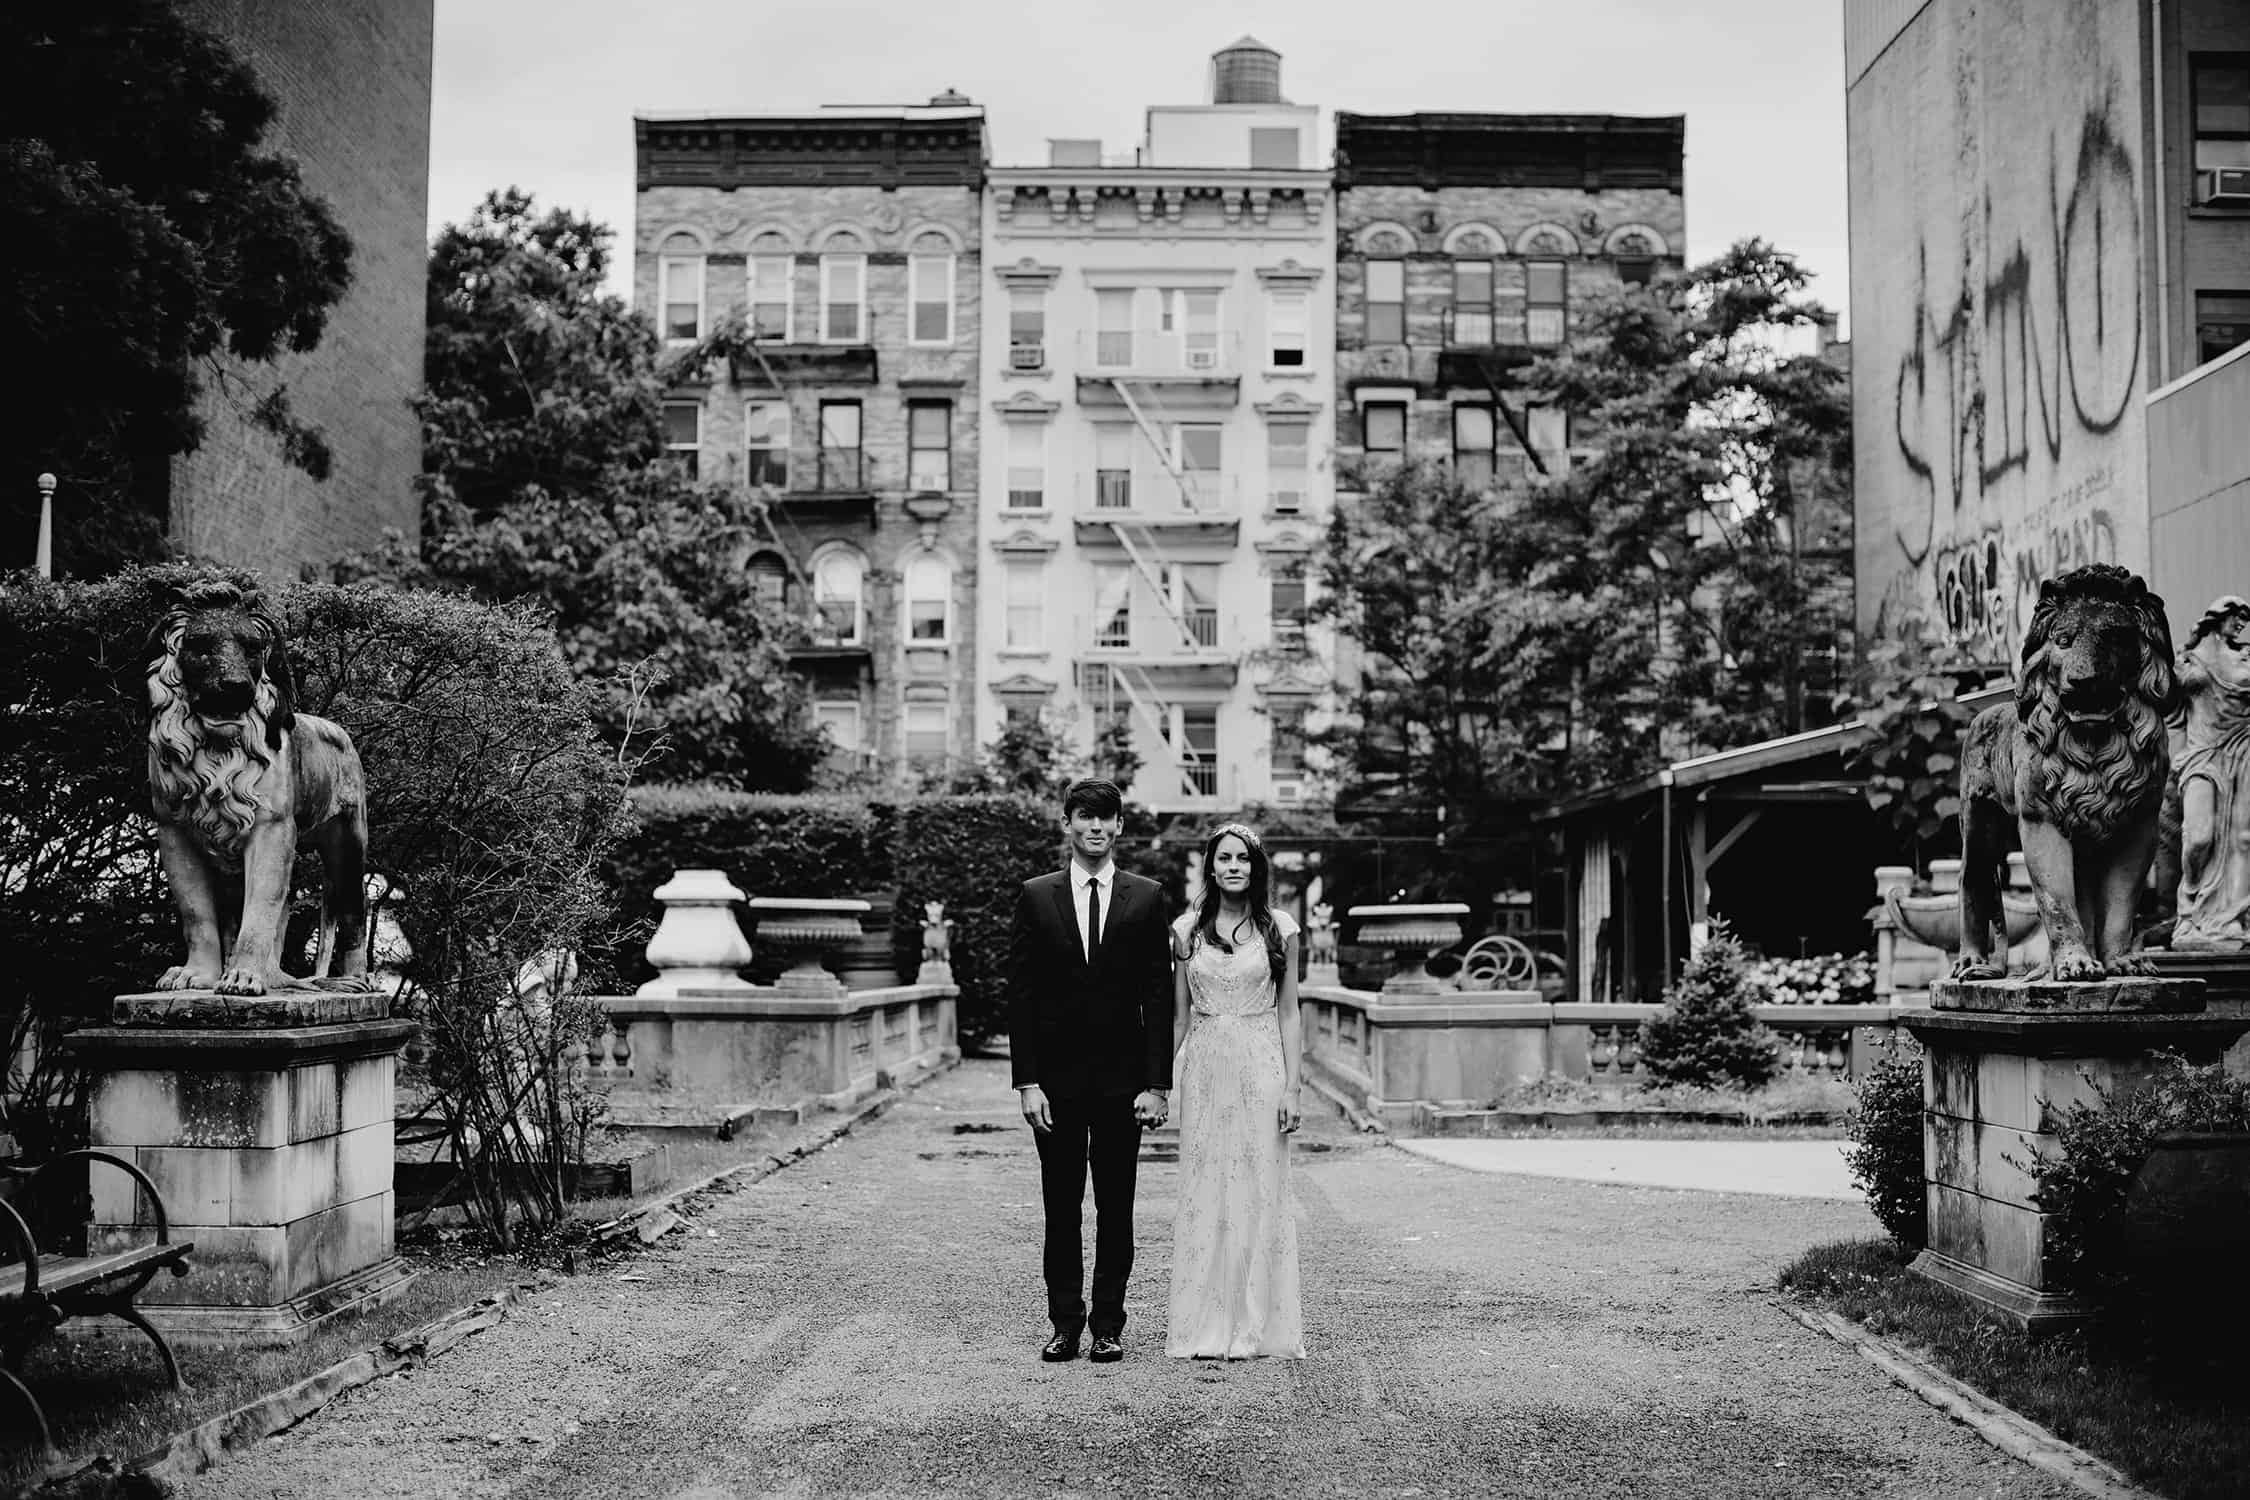 elizabeth street garden nyc wedding